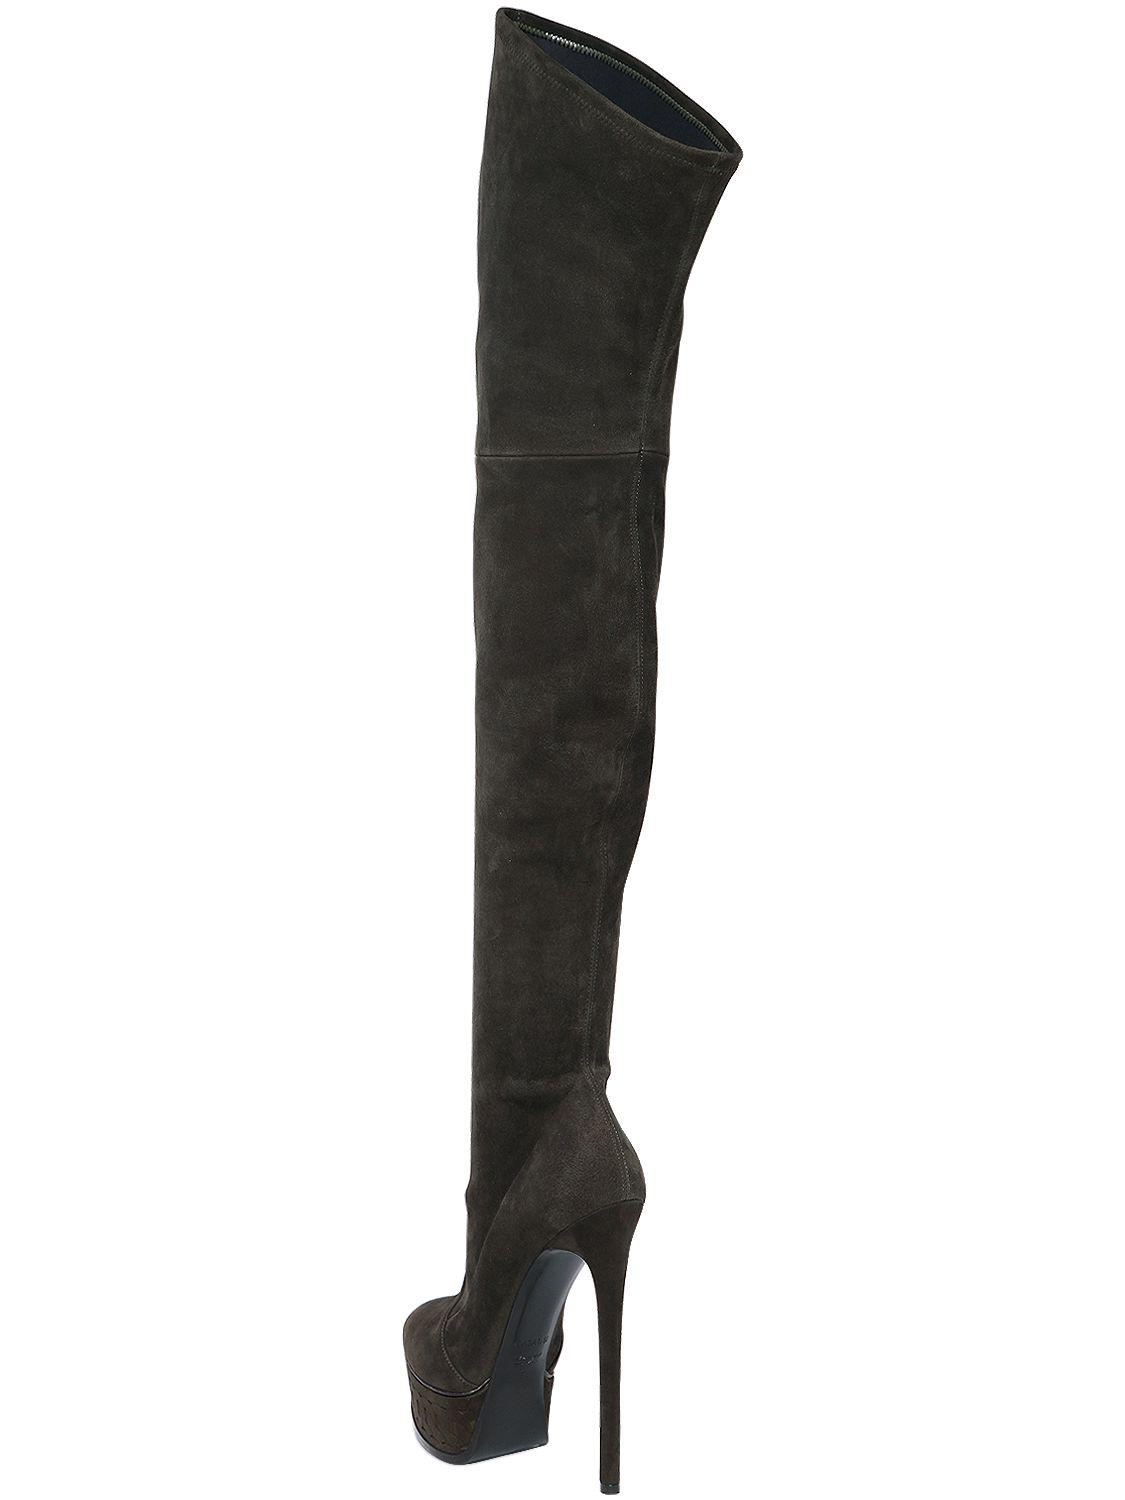 Casadei 140mm Stretch Suede Over The Knee Boots in Military Green (Black)